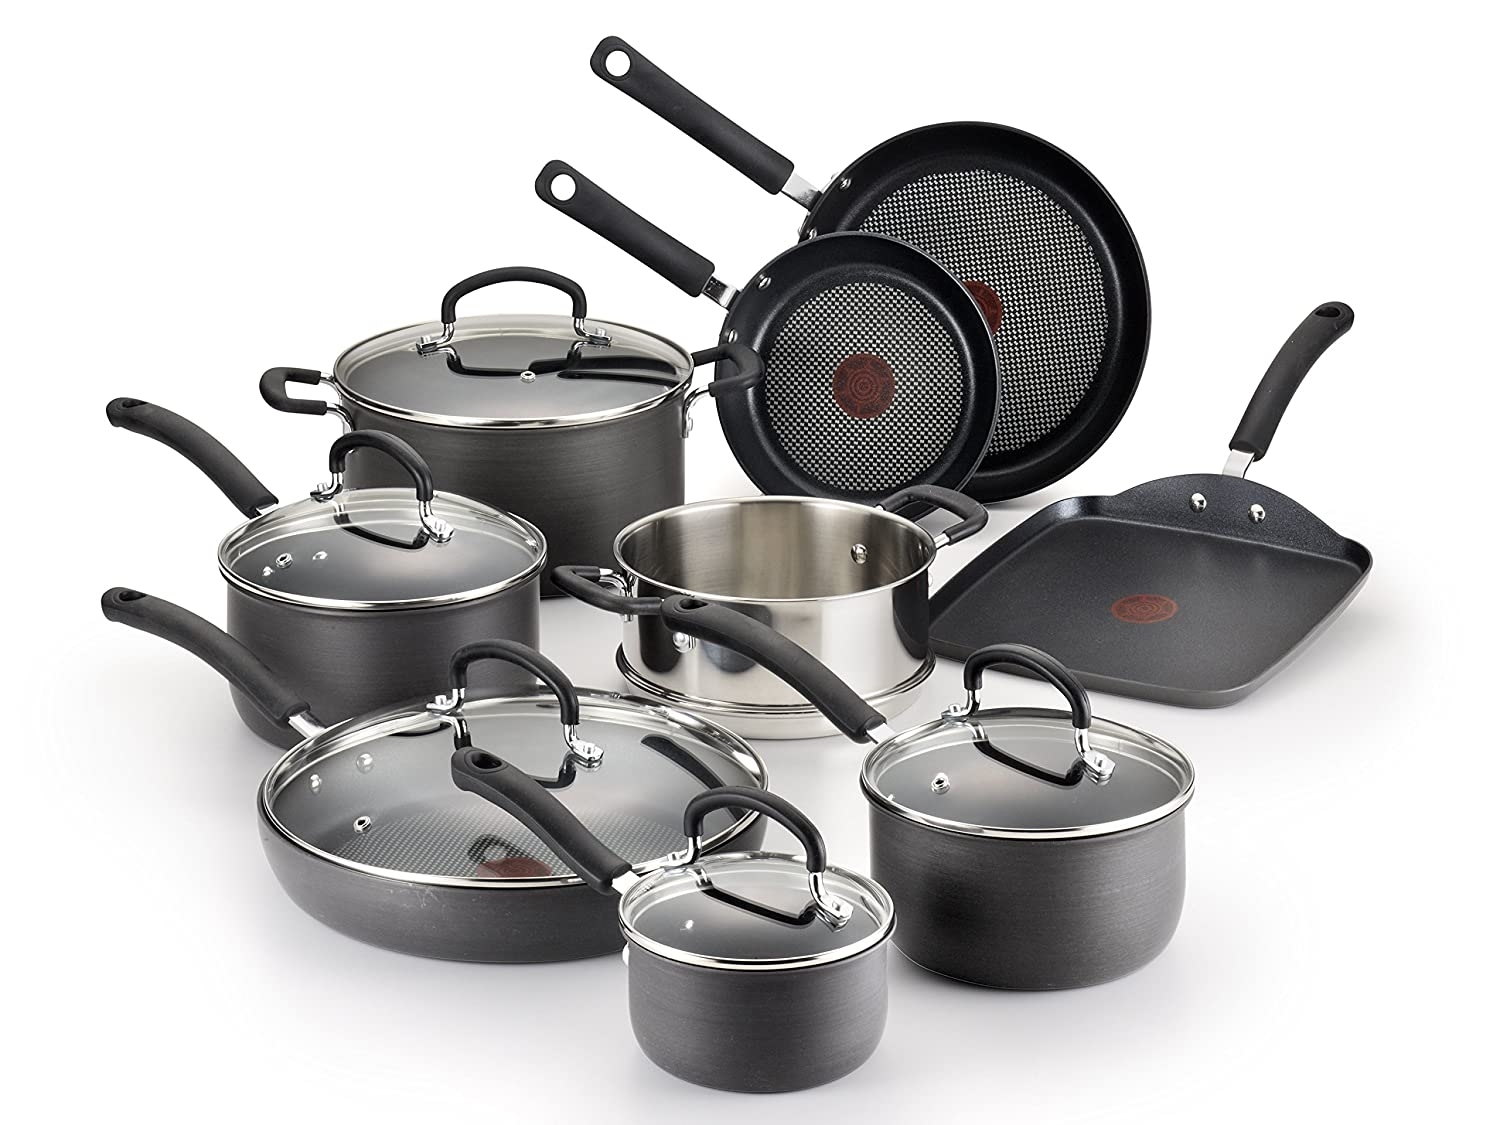 T-fal Hard Anodized Cookware Set, Nonstick Pots and Pans Set, 14 Piece, Thermo-Spot Heat Indicator, Gray